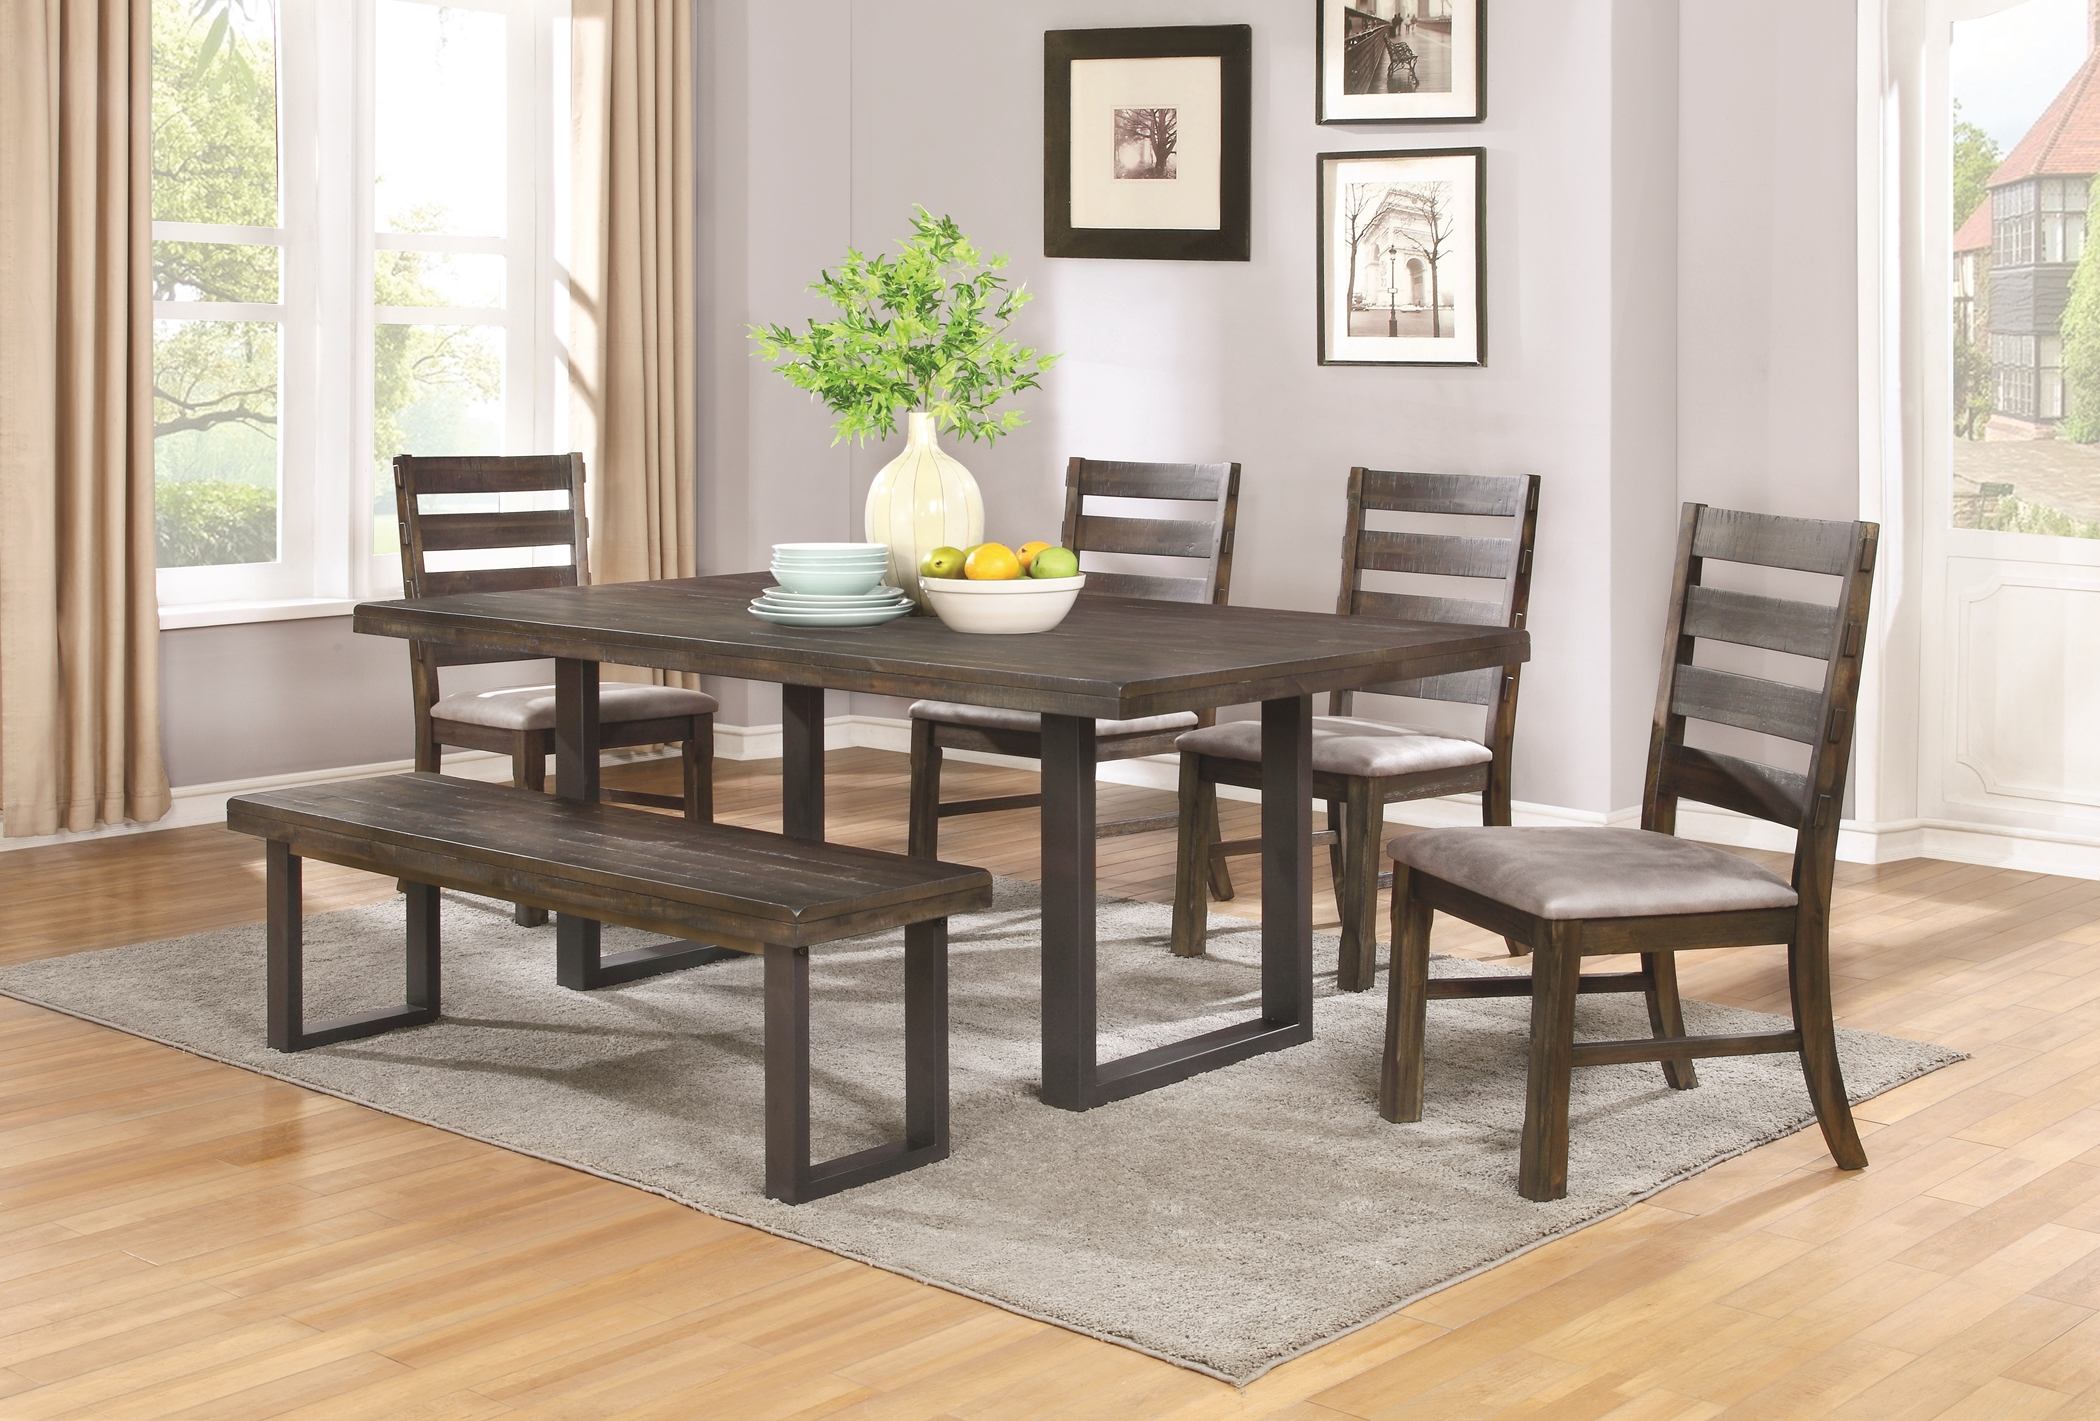 Murphy Rustic Metal and Wood 5 Pc. Set